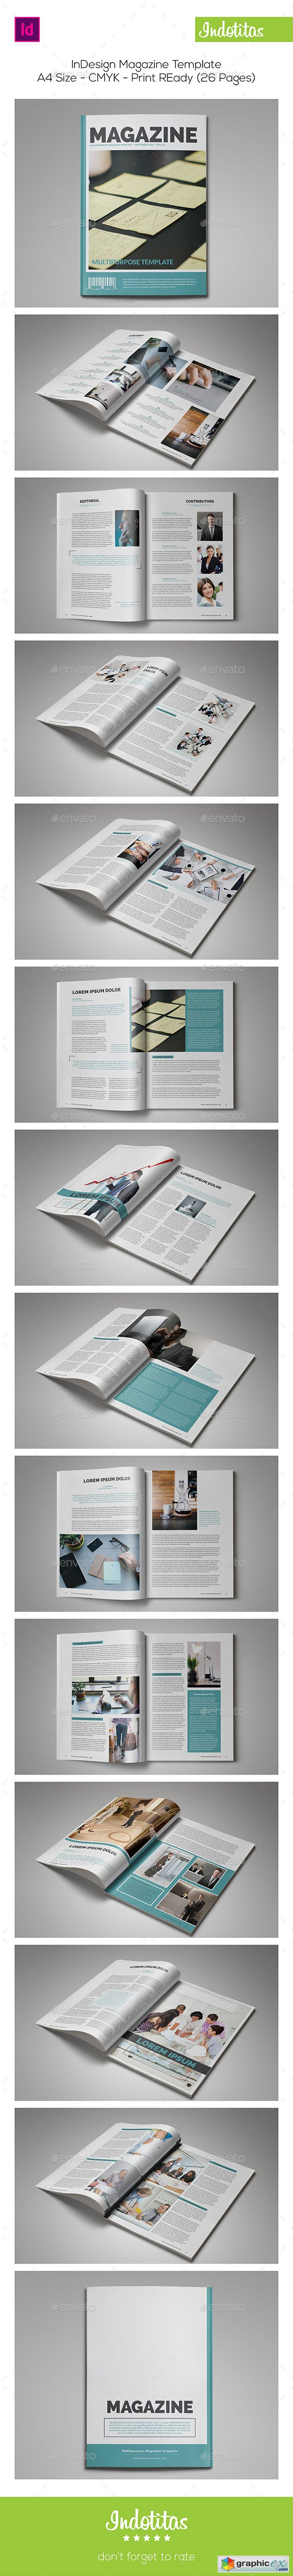 InDesign Magazine Template 8954436